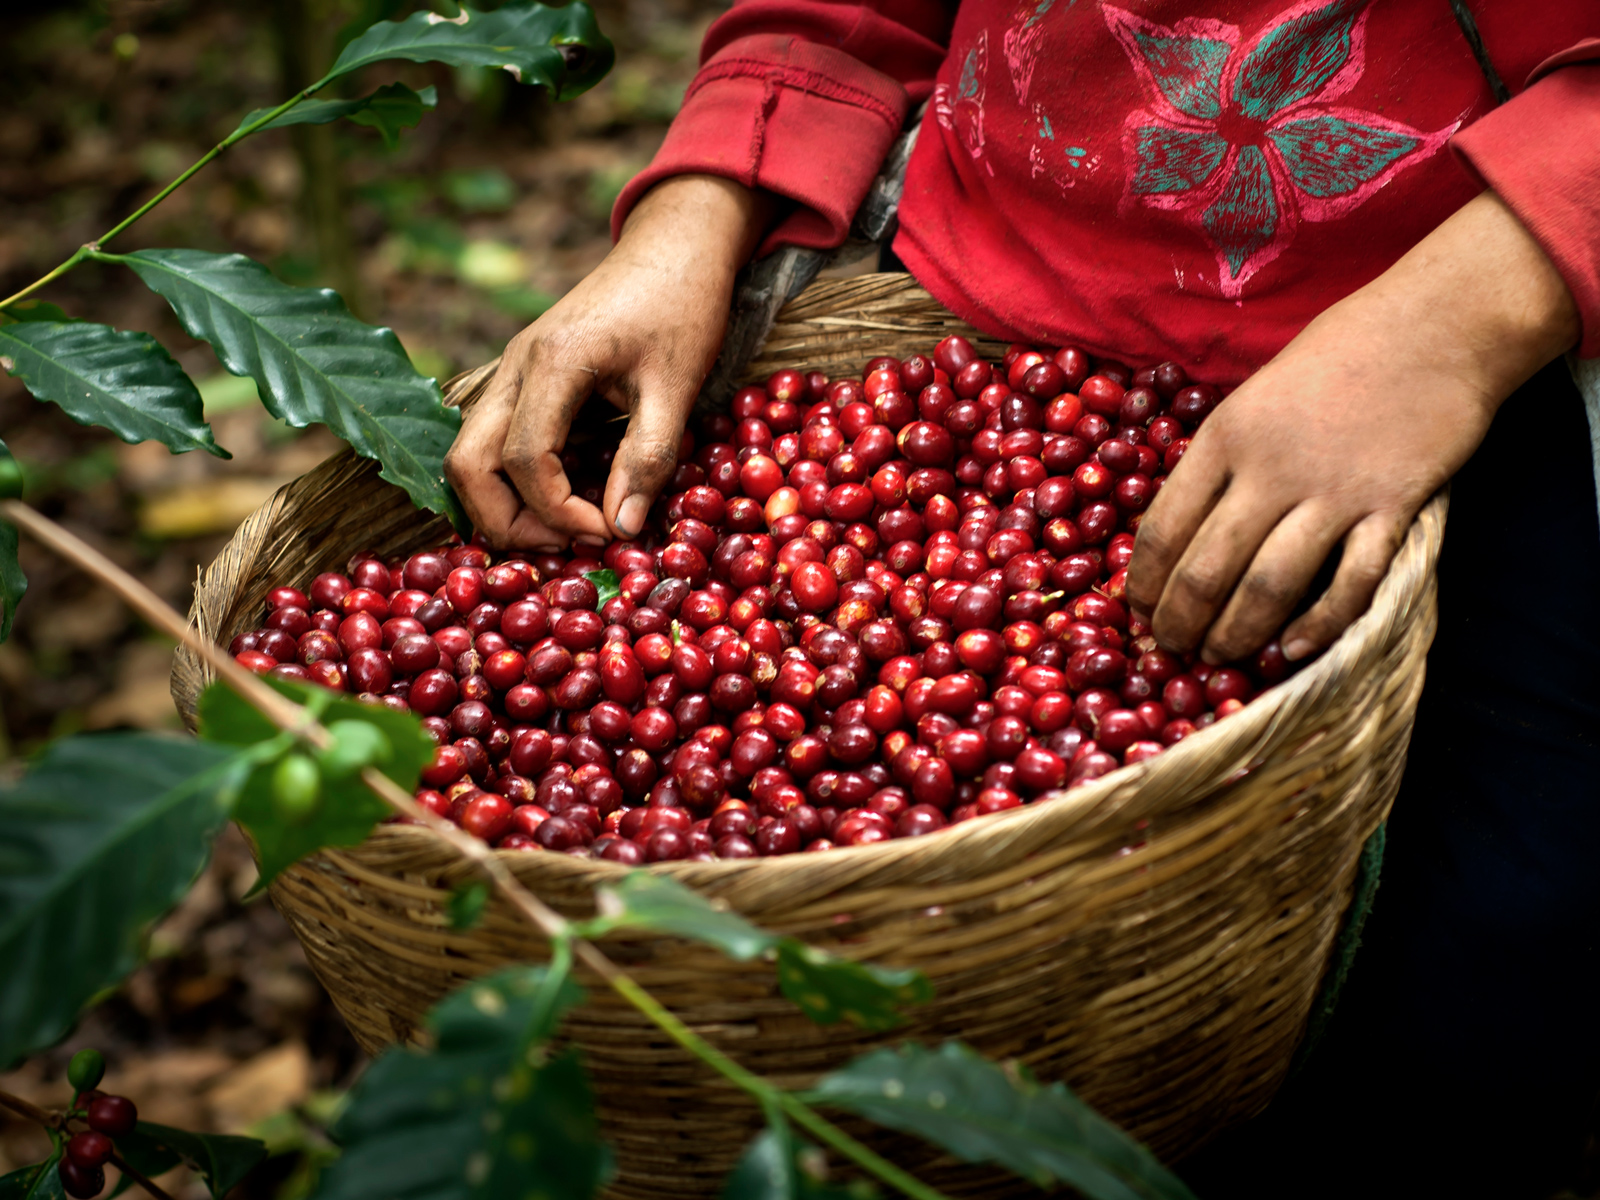 Why Coffee Berries Could Be Worth Even More Than the Beans